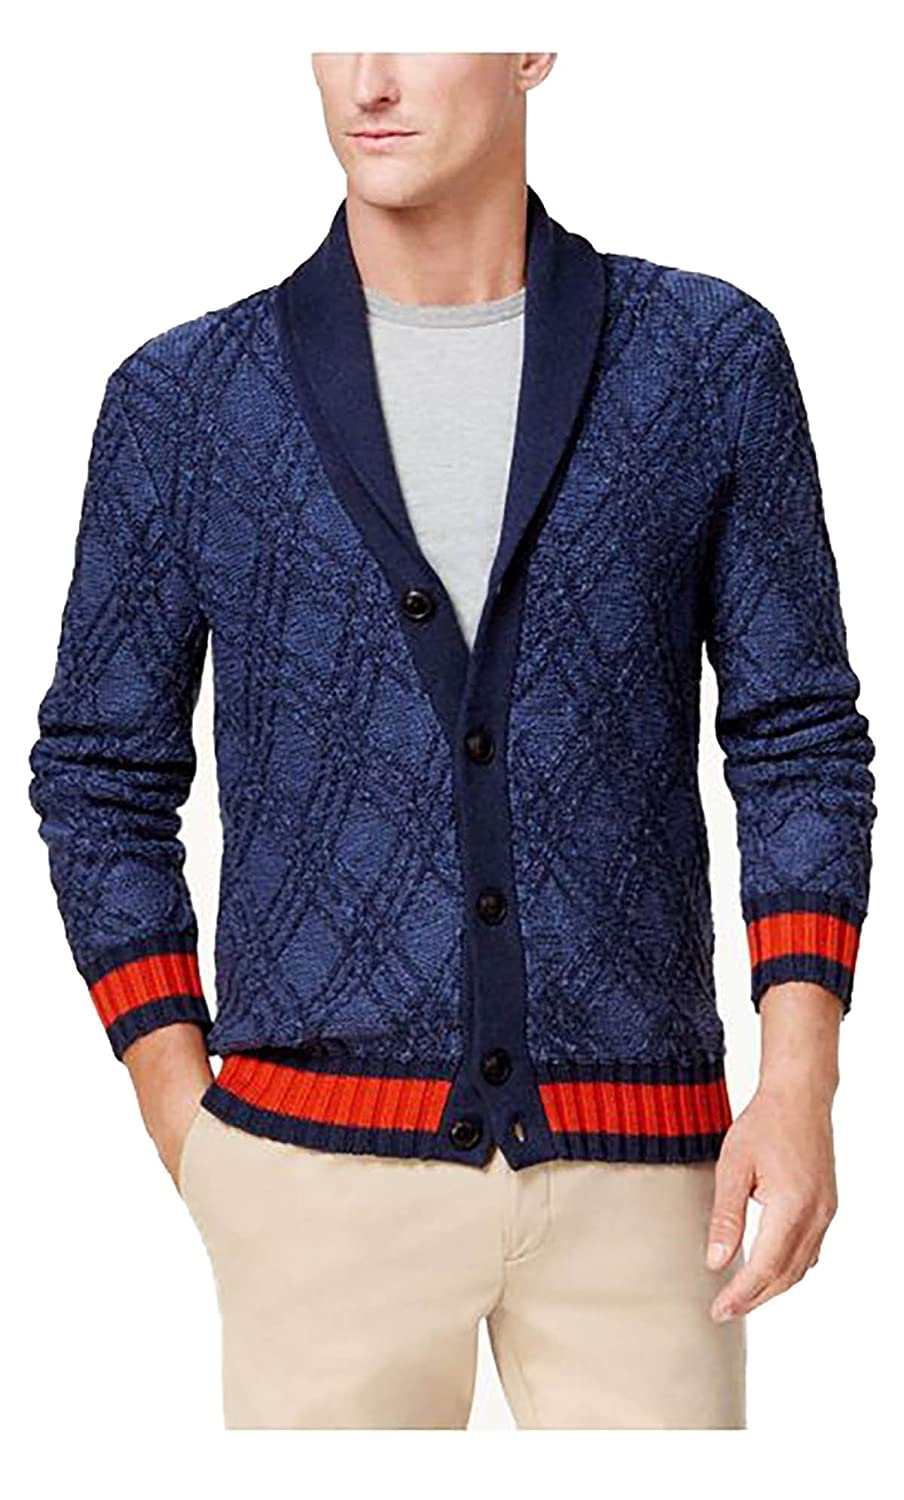 0637e1d08f4332 Tommy Hilfiger Mens Knit Cardigan Sweater Blue M at Amazon Men's Clothing  store: